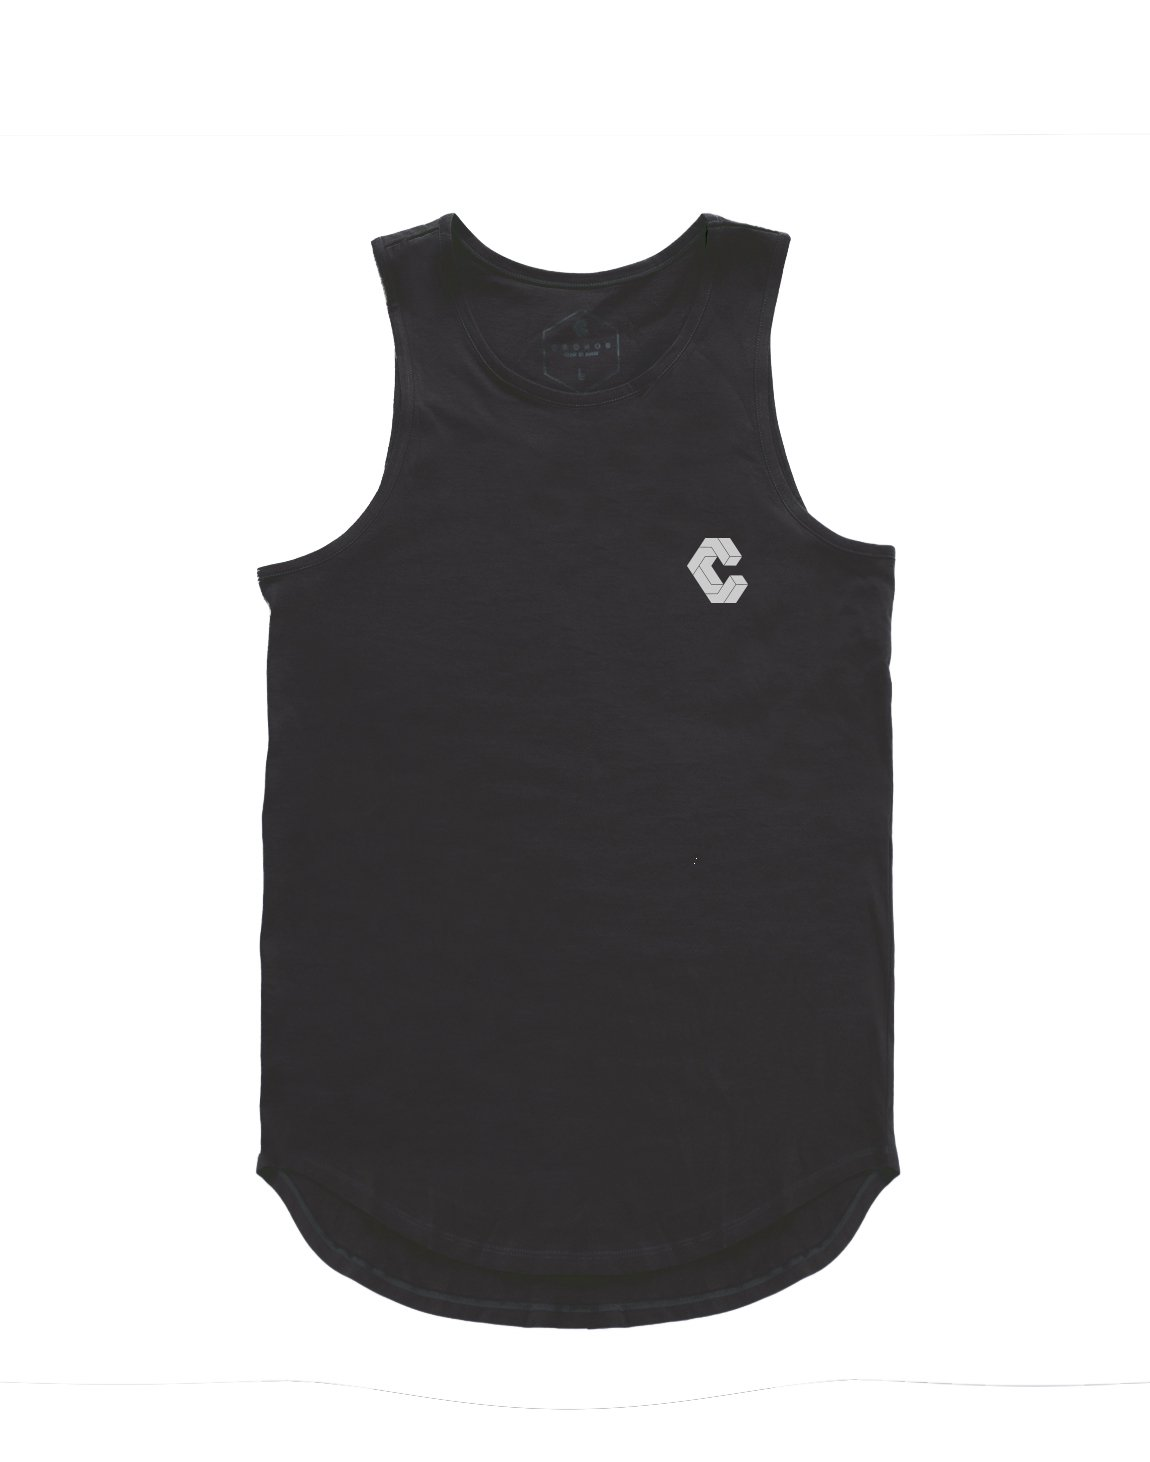 <img class='new_mark_img1' src='https://img.shop-pro.jp/img/new/icons1.gif' style='border:none;display:inline;margin:0px;padding:0px;width:auto;' />CRONOS BACK BOX LOGO TANK TOP 【BLACK】